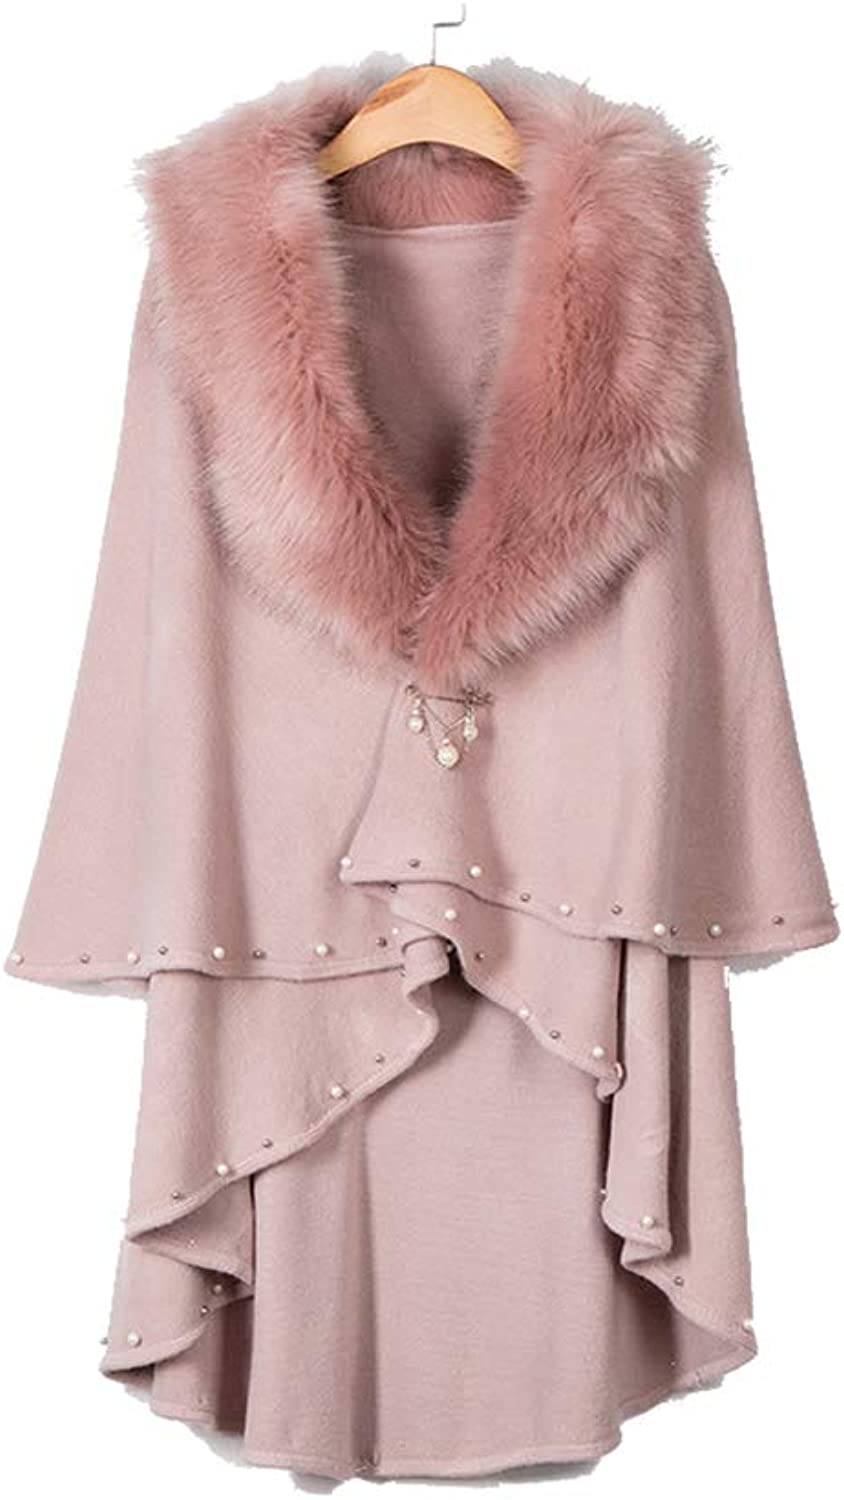 Womens Cape Poncho Coat Women Warm Long Shawl Cloak Cape Coat Buckle Closed Stole Cardigan Cloak Jacket for Winter Cocktail (color   Pink)